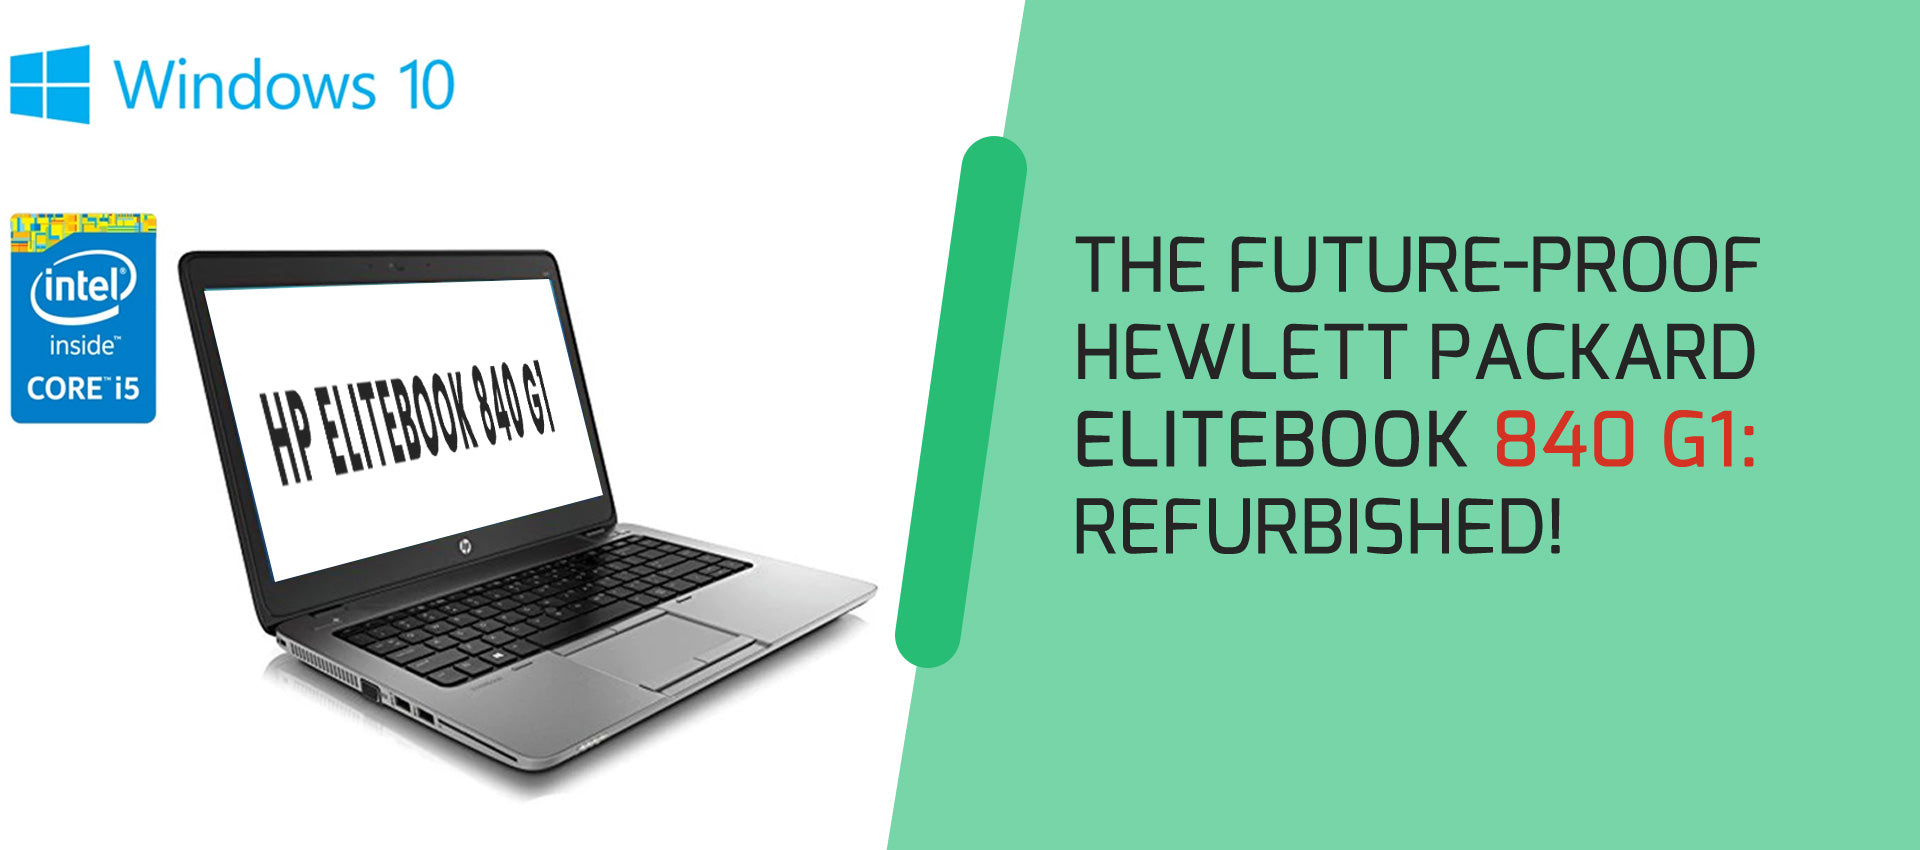 The Future-Proof Hewlett Packard EliteBook 840 G1- Refurbished!